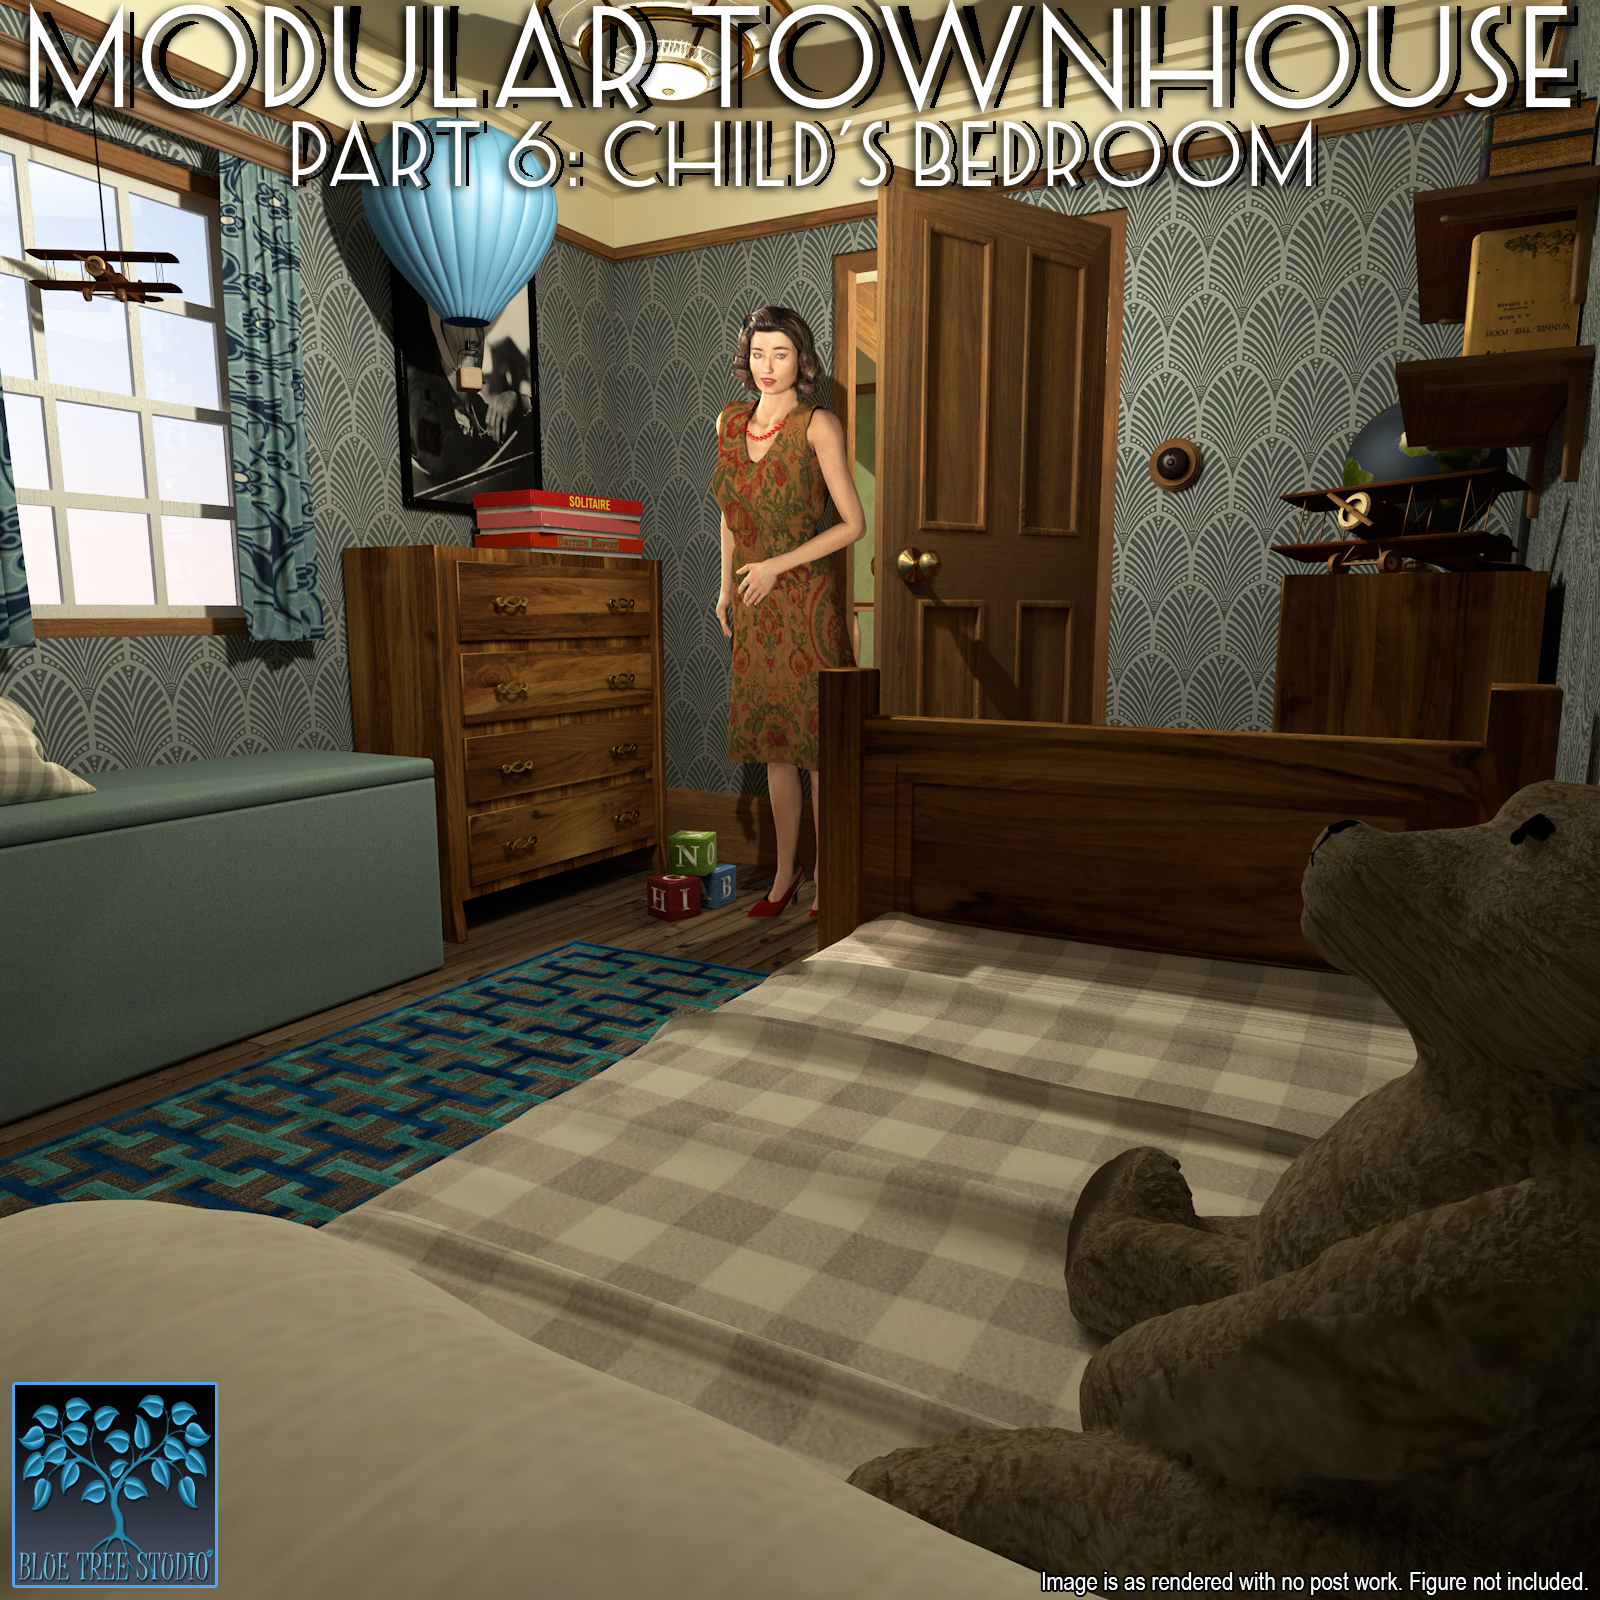 Modular Townhouse 6: Child's Bedroom for Poser by BlueTreeStudio